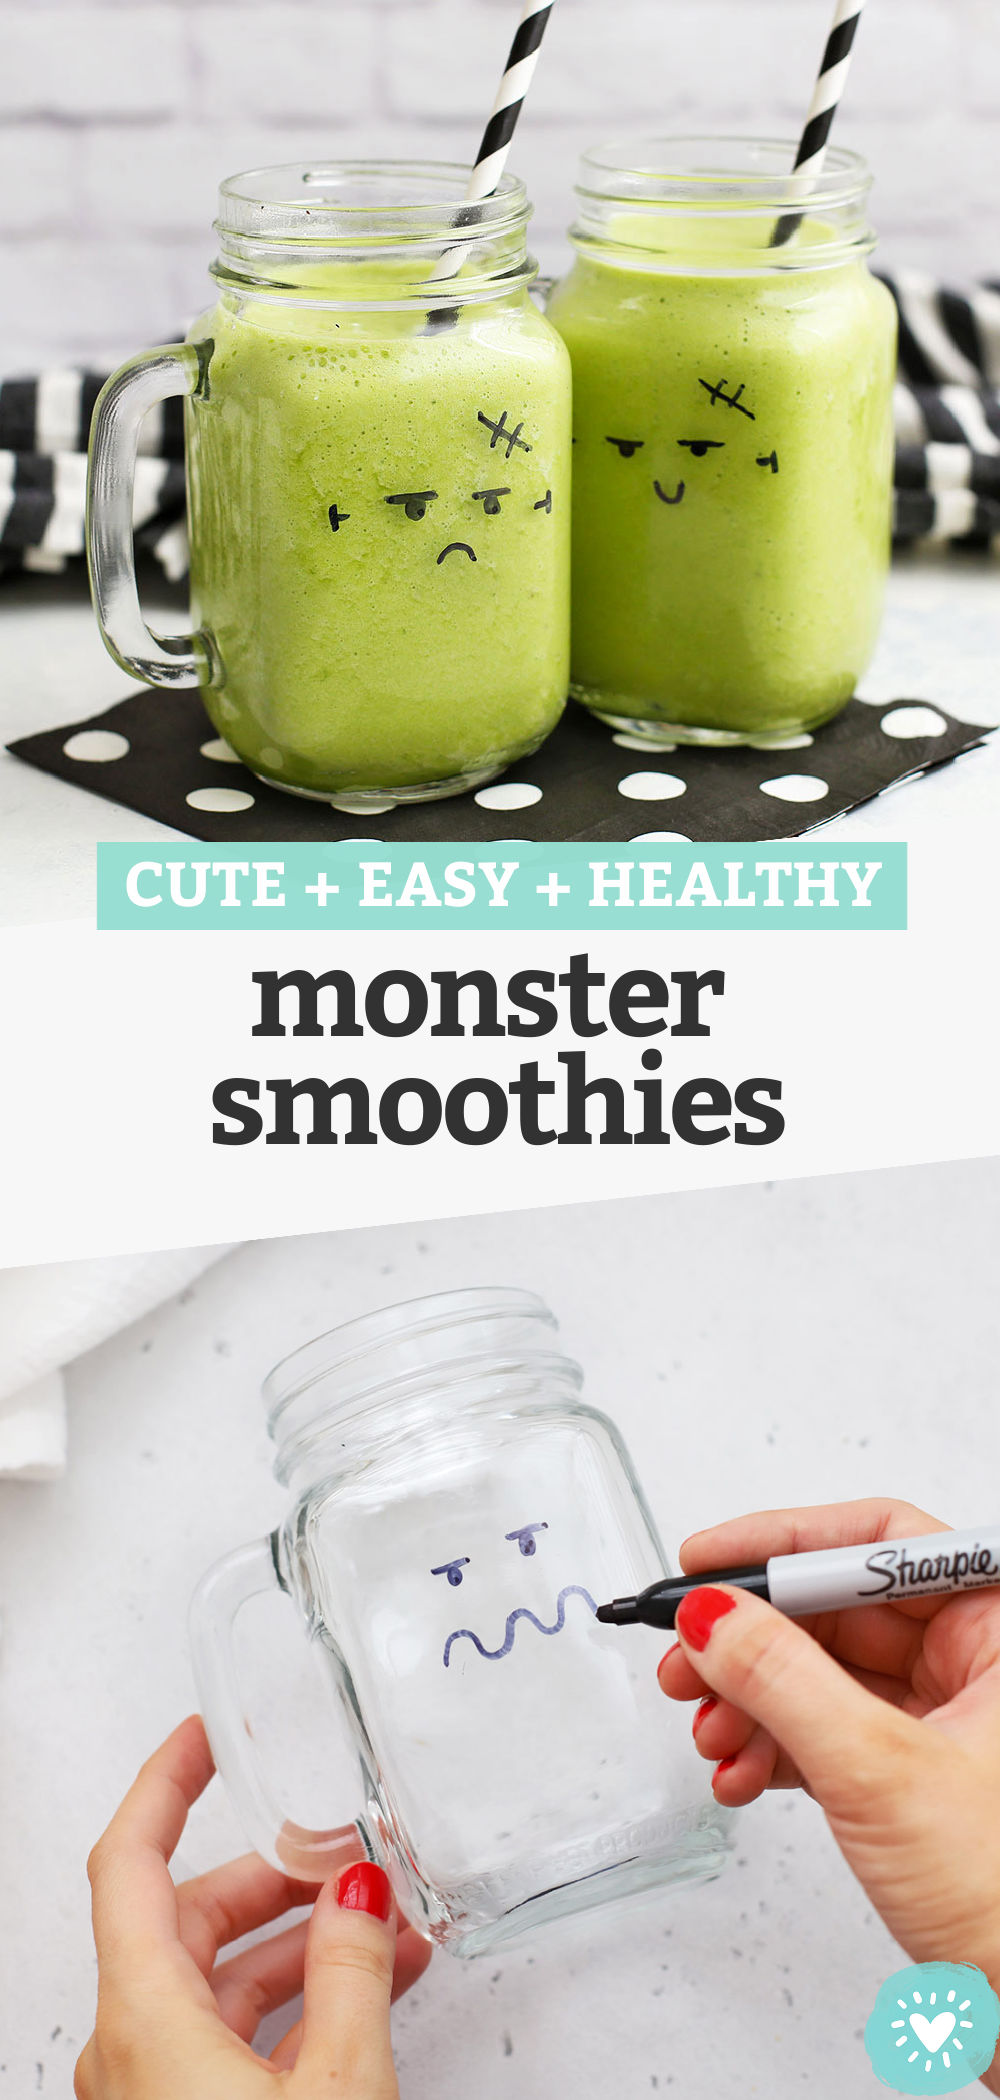 Halloween Monster Smoothies - Learn how to use a marker to make adorable monster smoothies on your smoothie cups. The perfect Halloween breakfast or healthy Hallowen snack! // Halloween ideas for kids // green monster smoothie // halloween party food #halloween #fallrecipe #halloweensnack #healthysnack